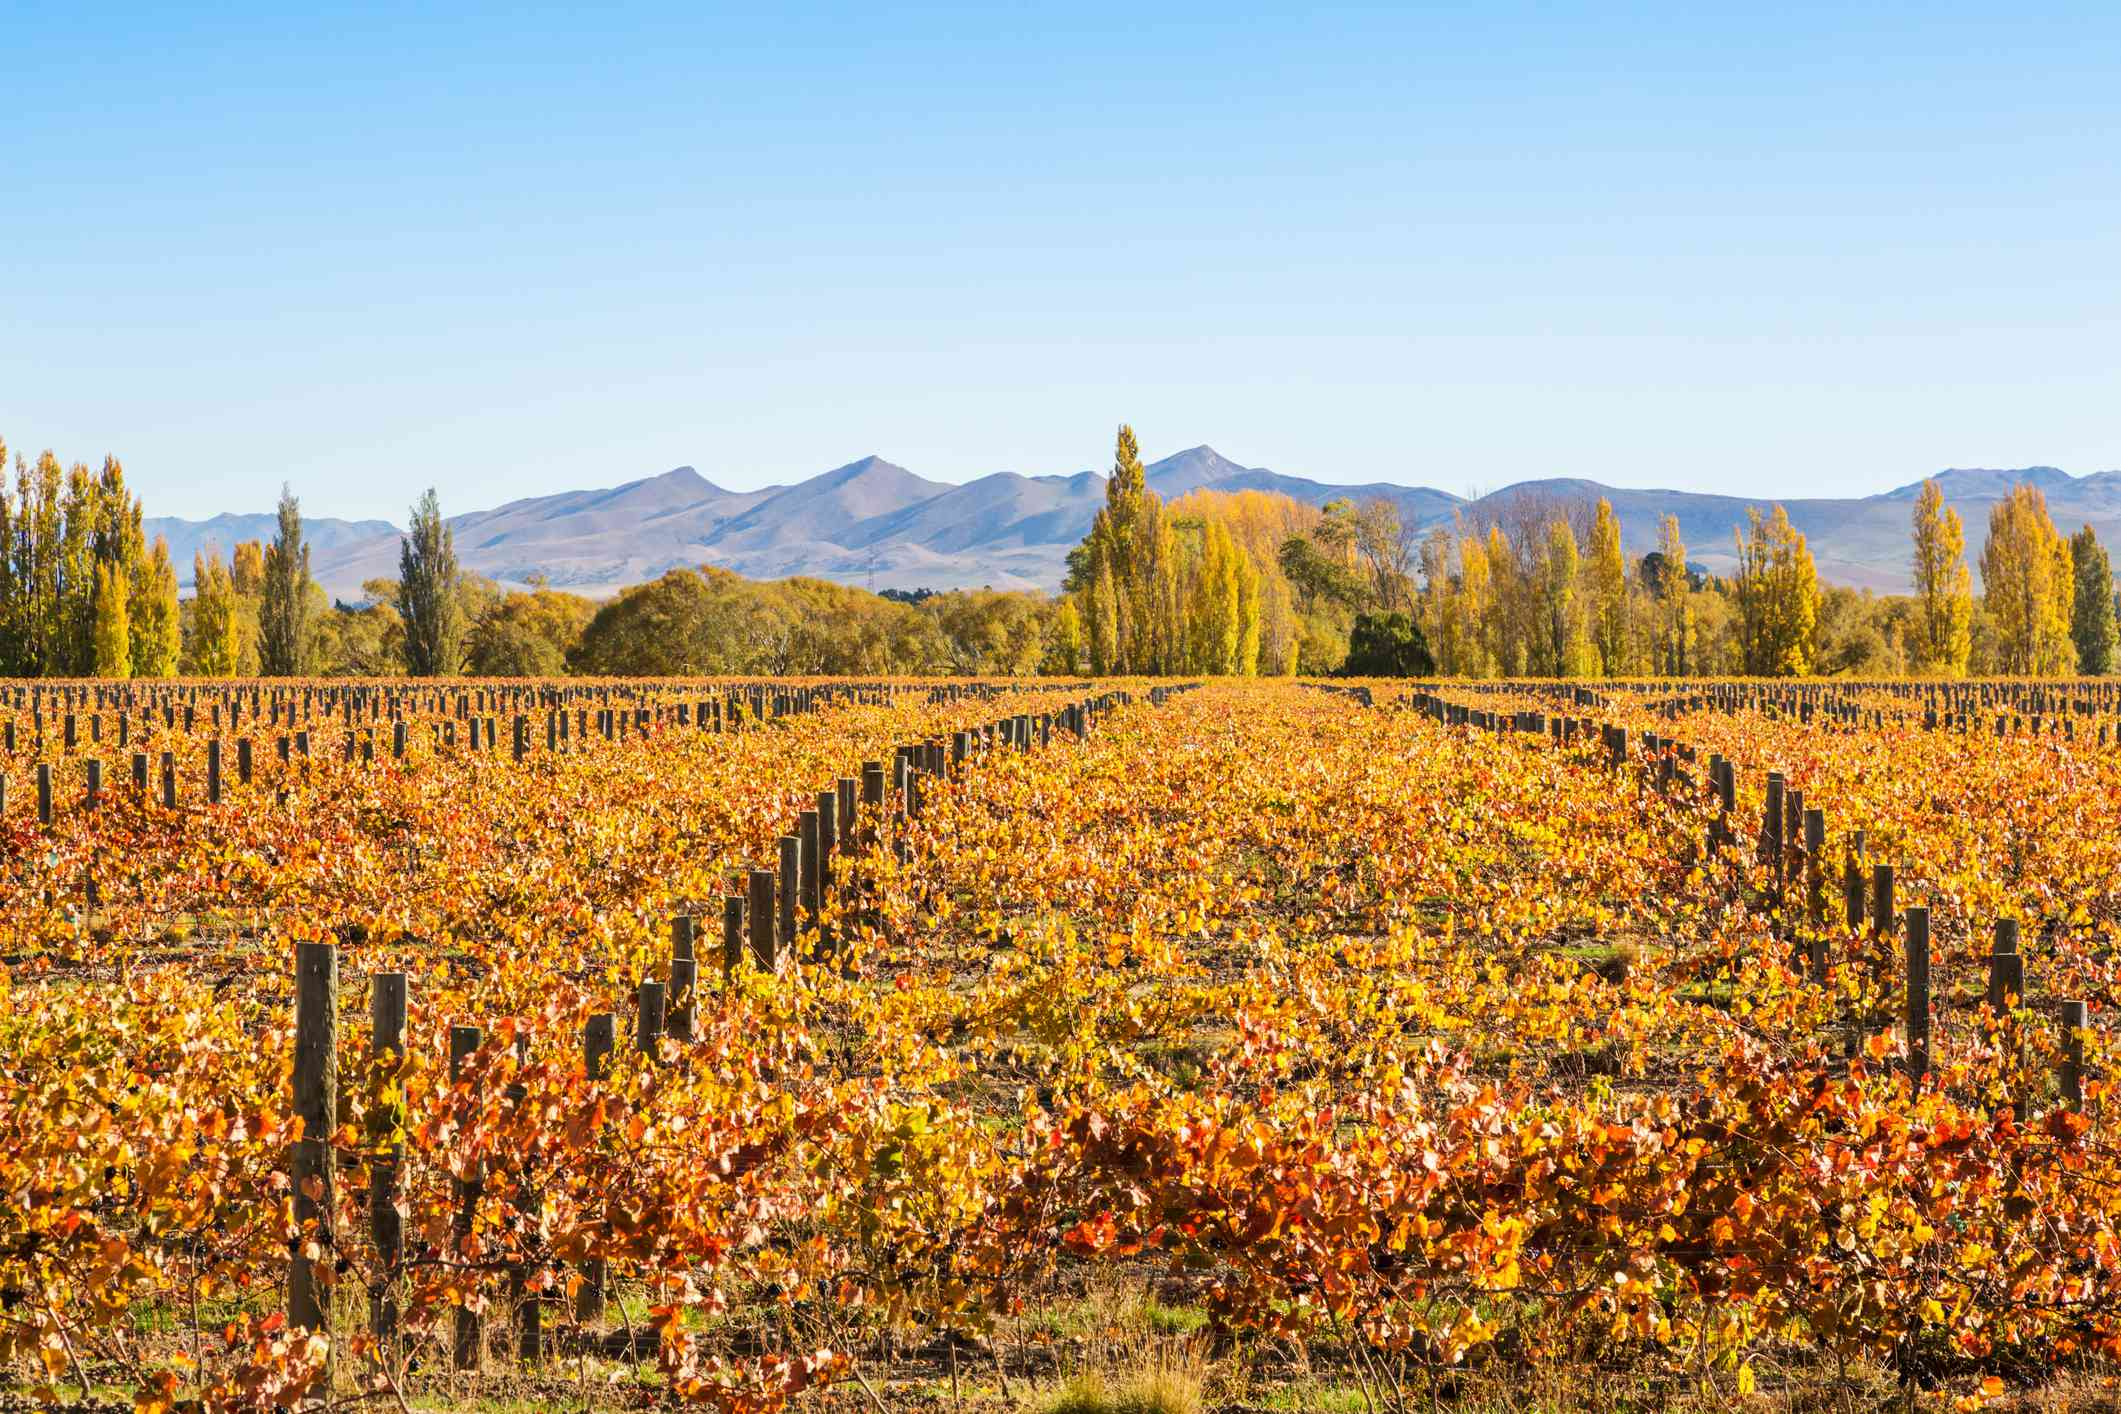 vineyards with trees and mountains in background